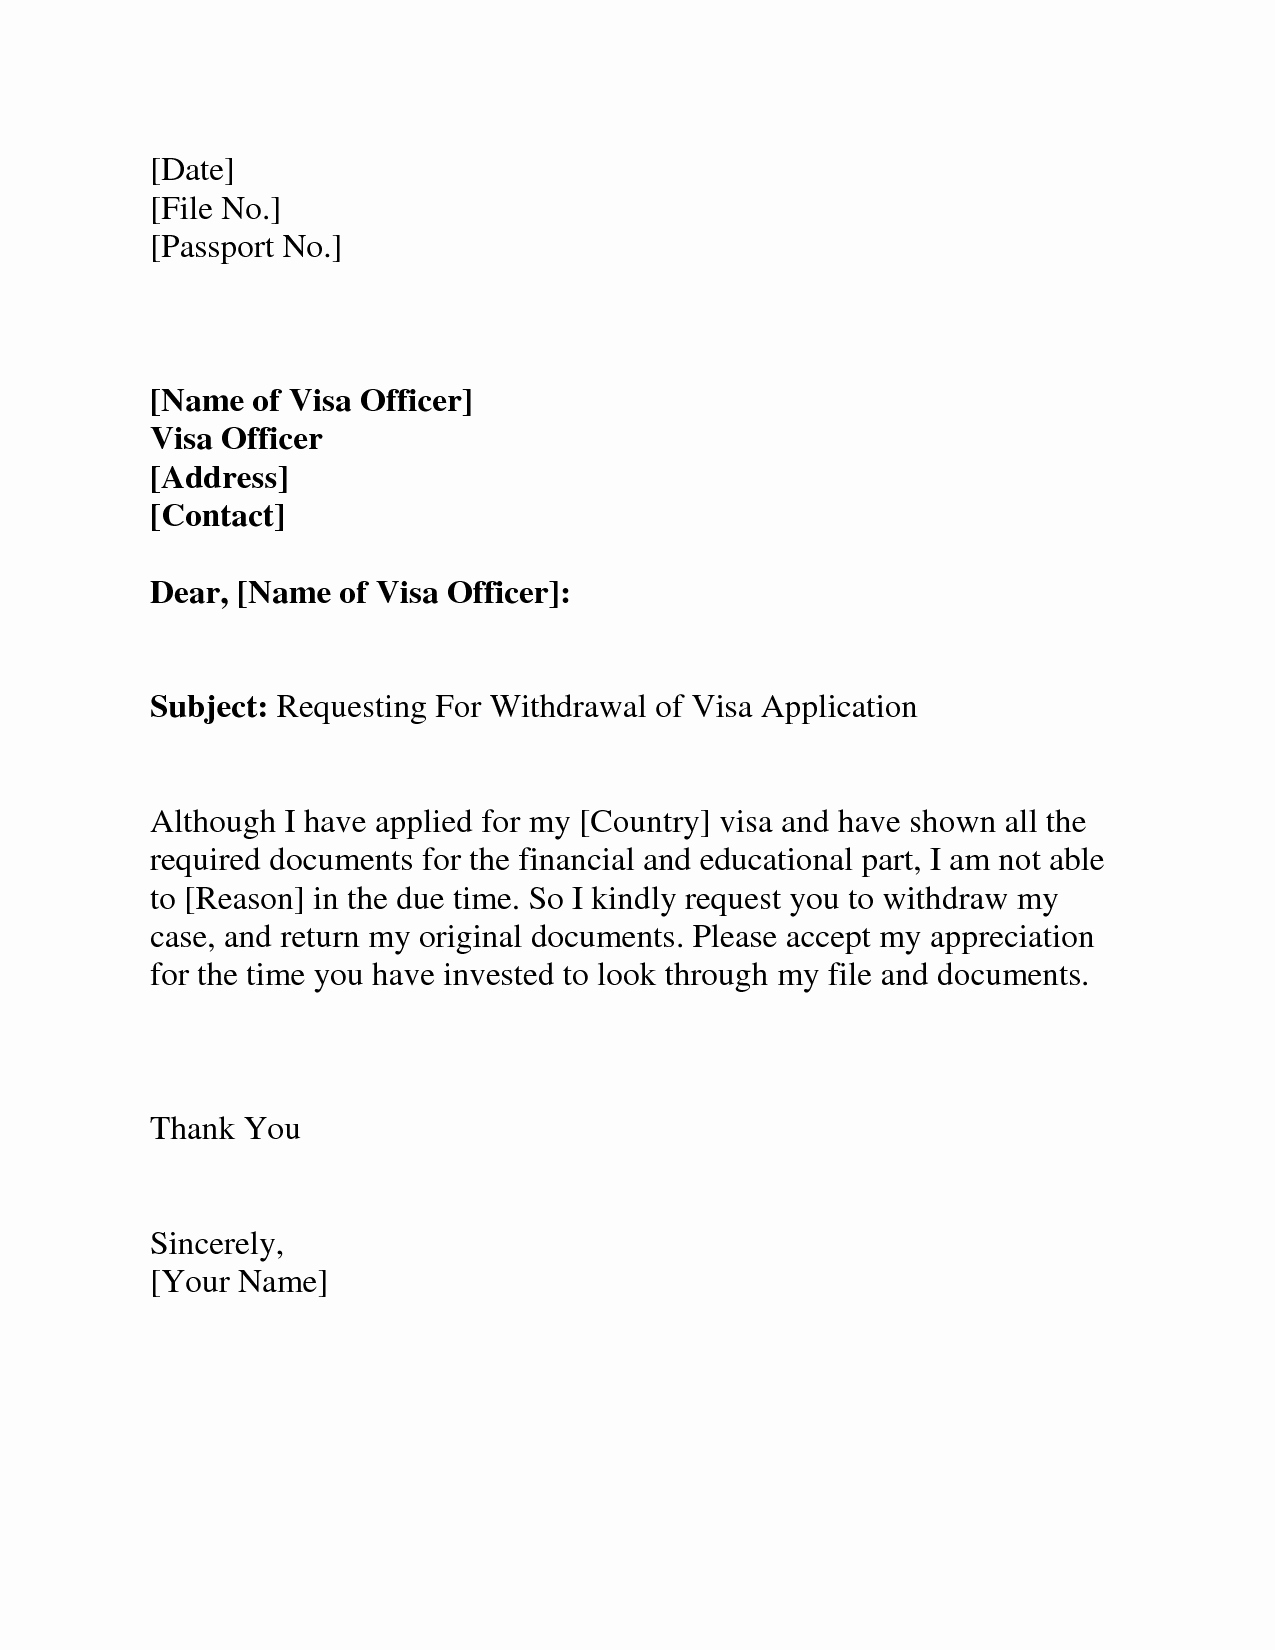 Medical School Update Letter format Inspirational Visa withdrawal Letter Request Letter format Letter and